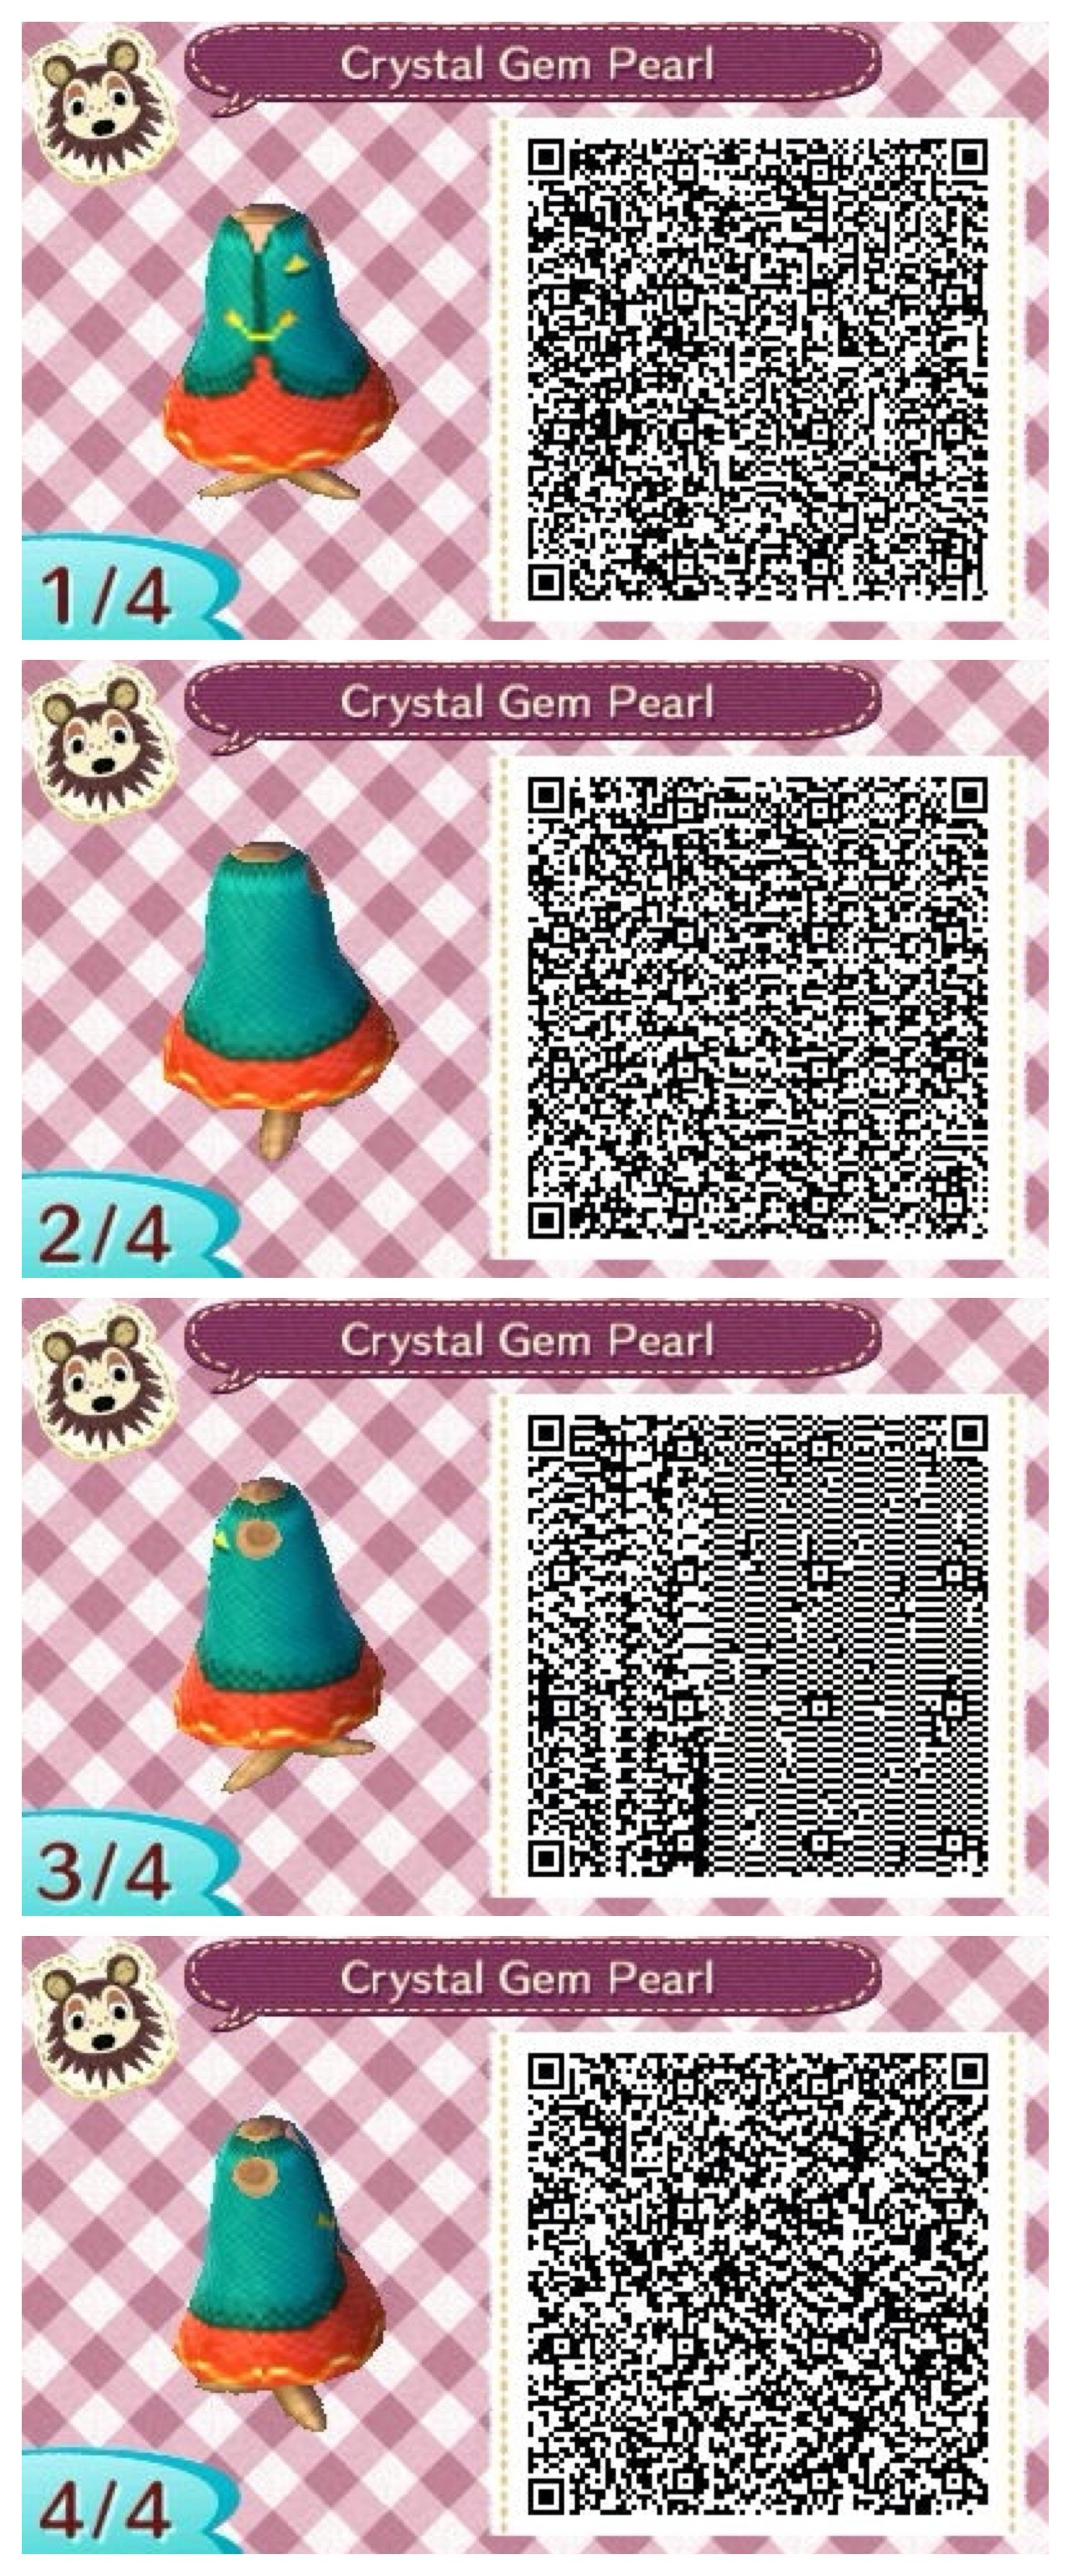 Pearl Steven Universe Themed Animal Crossing New Leaf Qr Code Made By Elle From Appleto Animal Crossing Animal Crossing Qr Animal Crossing Qr Codes Clothes